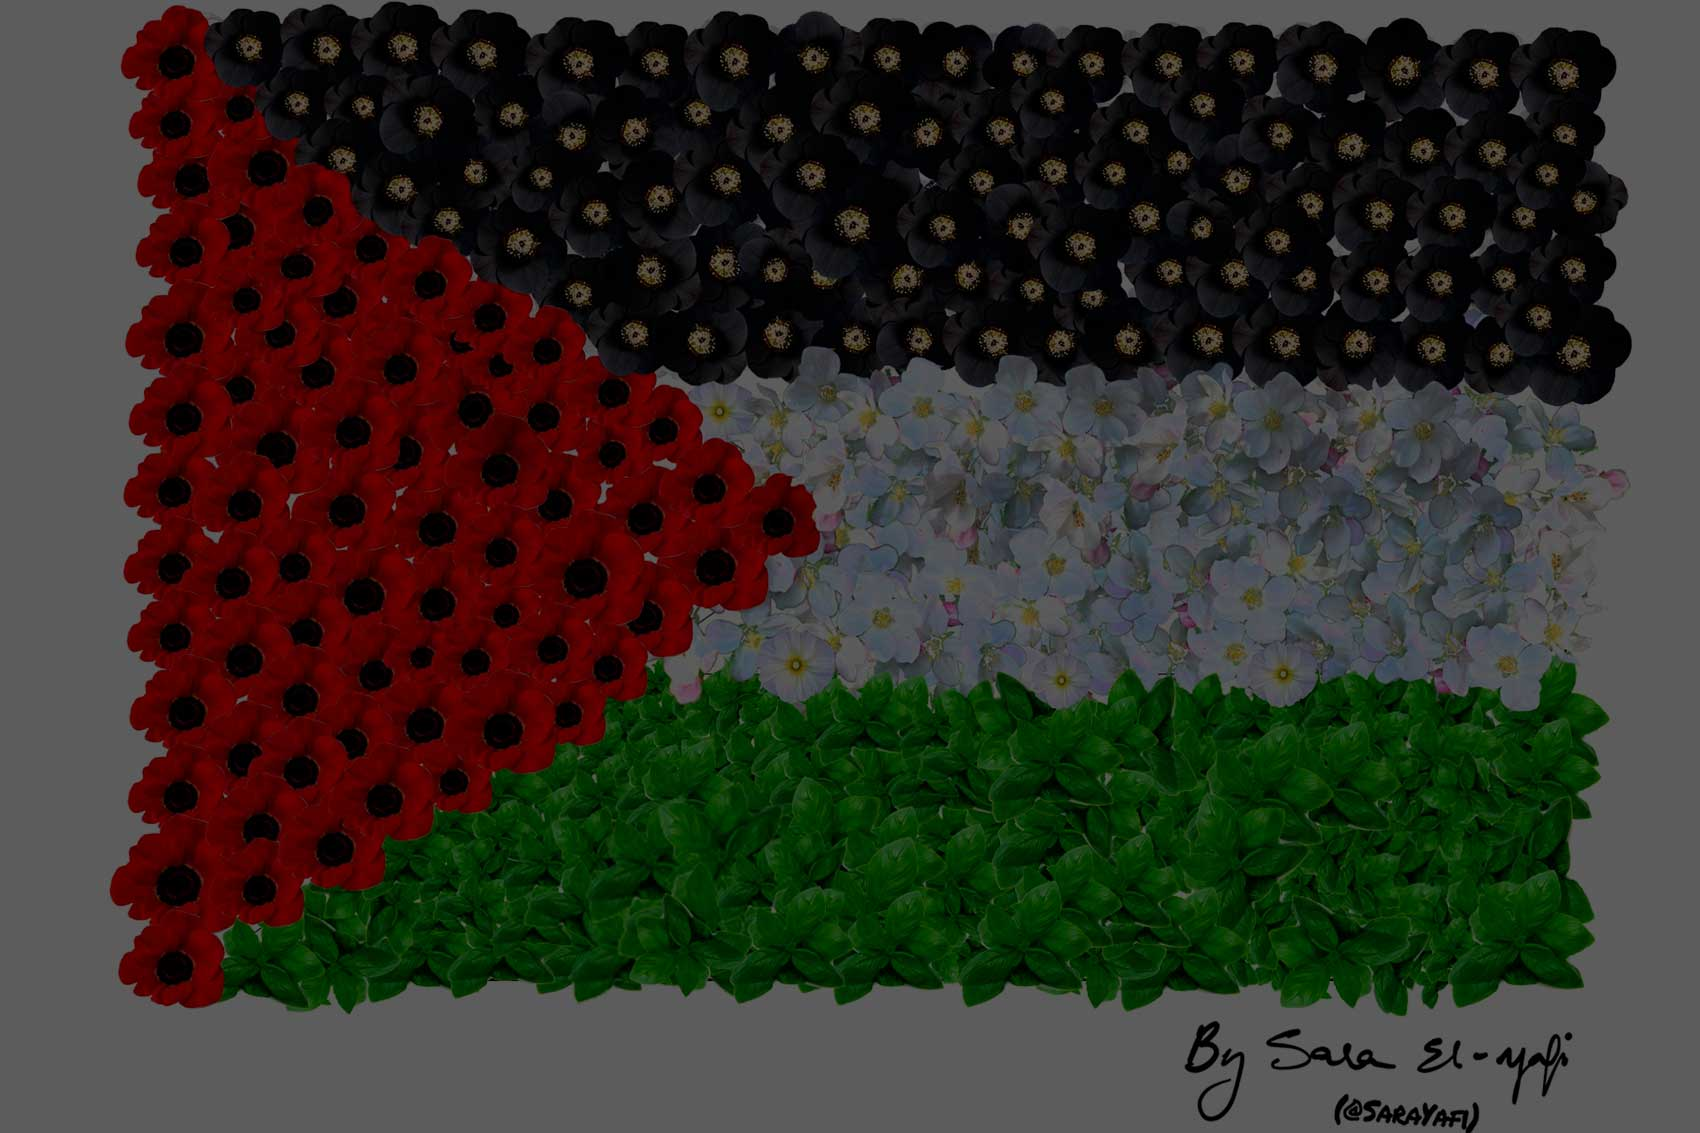 Dear President Obama, Please Recognize Palestine Before You Leave Office